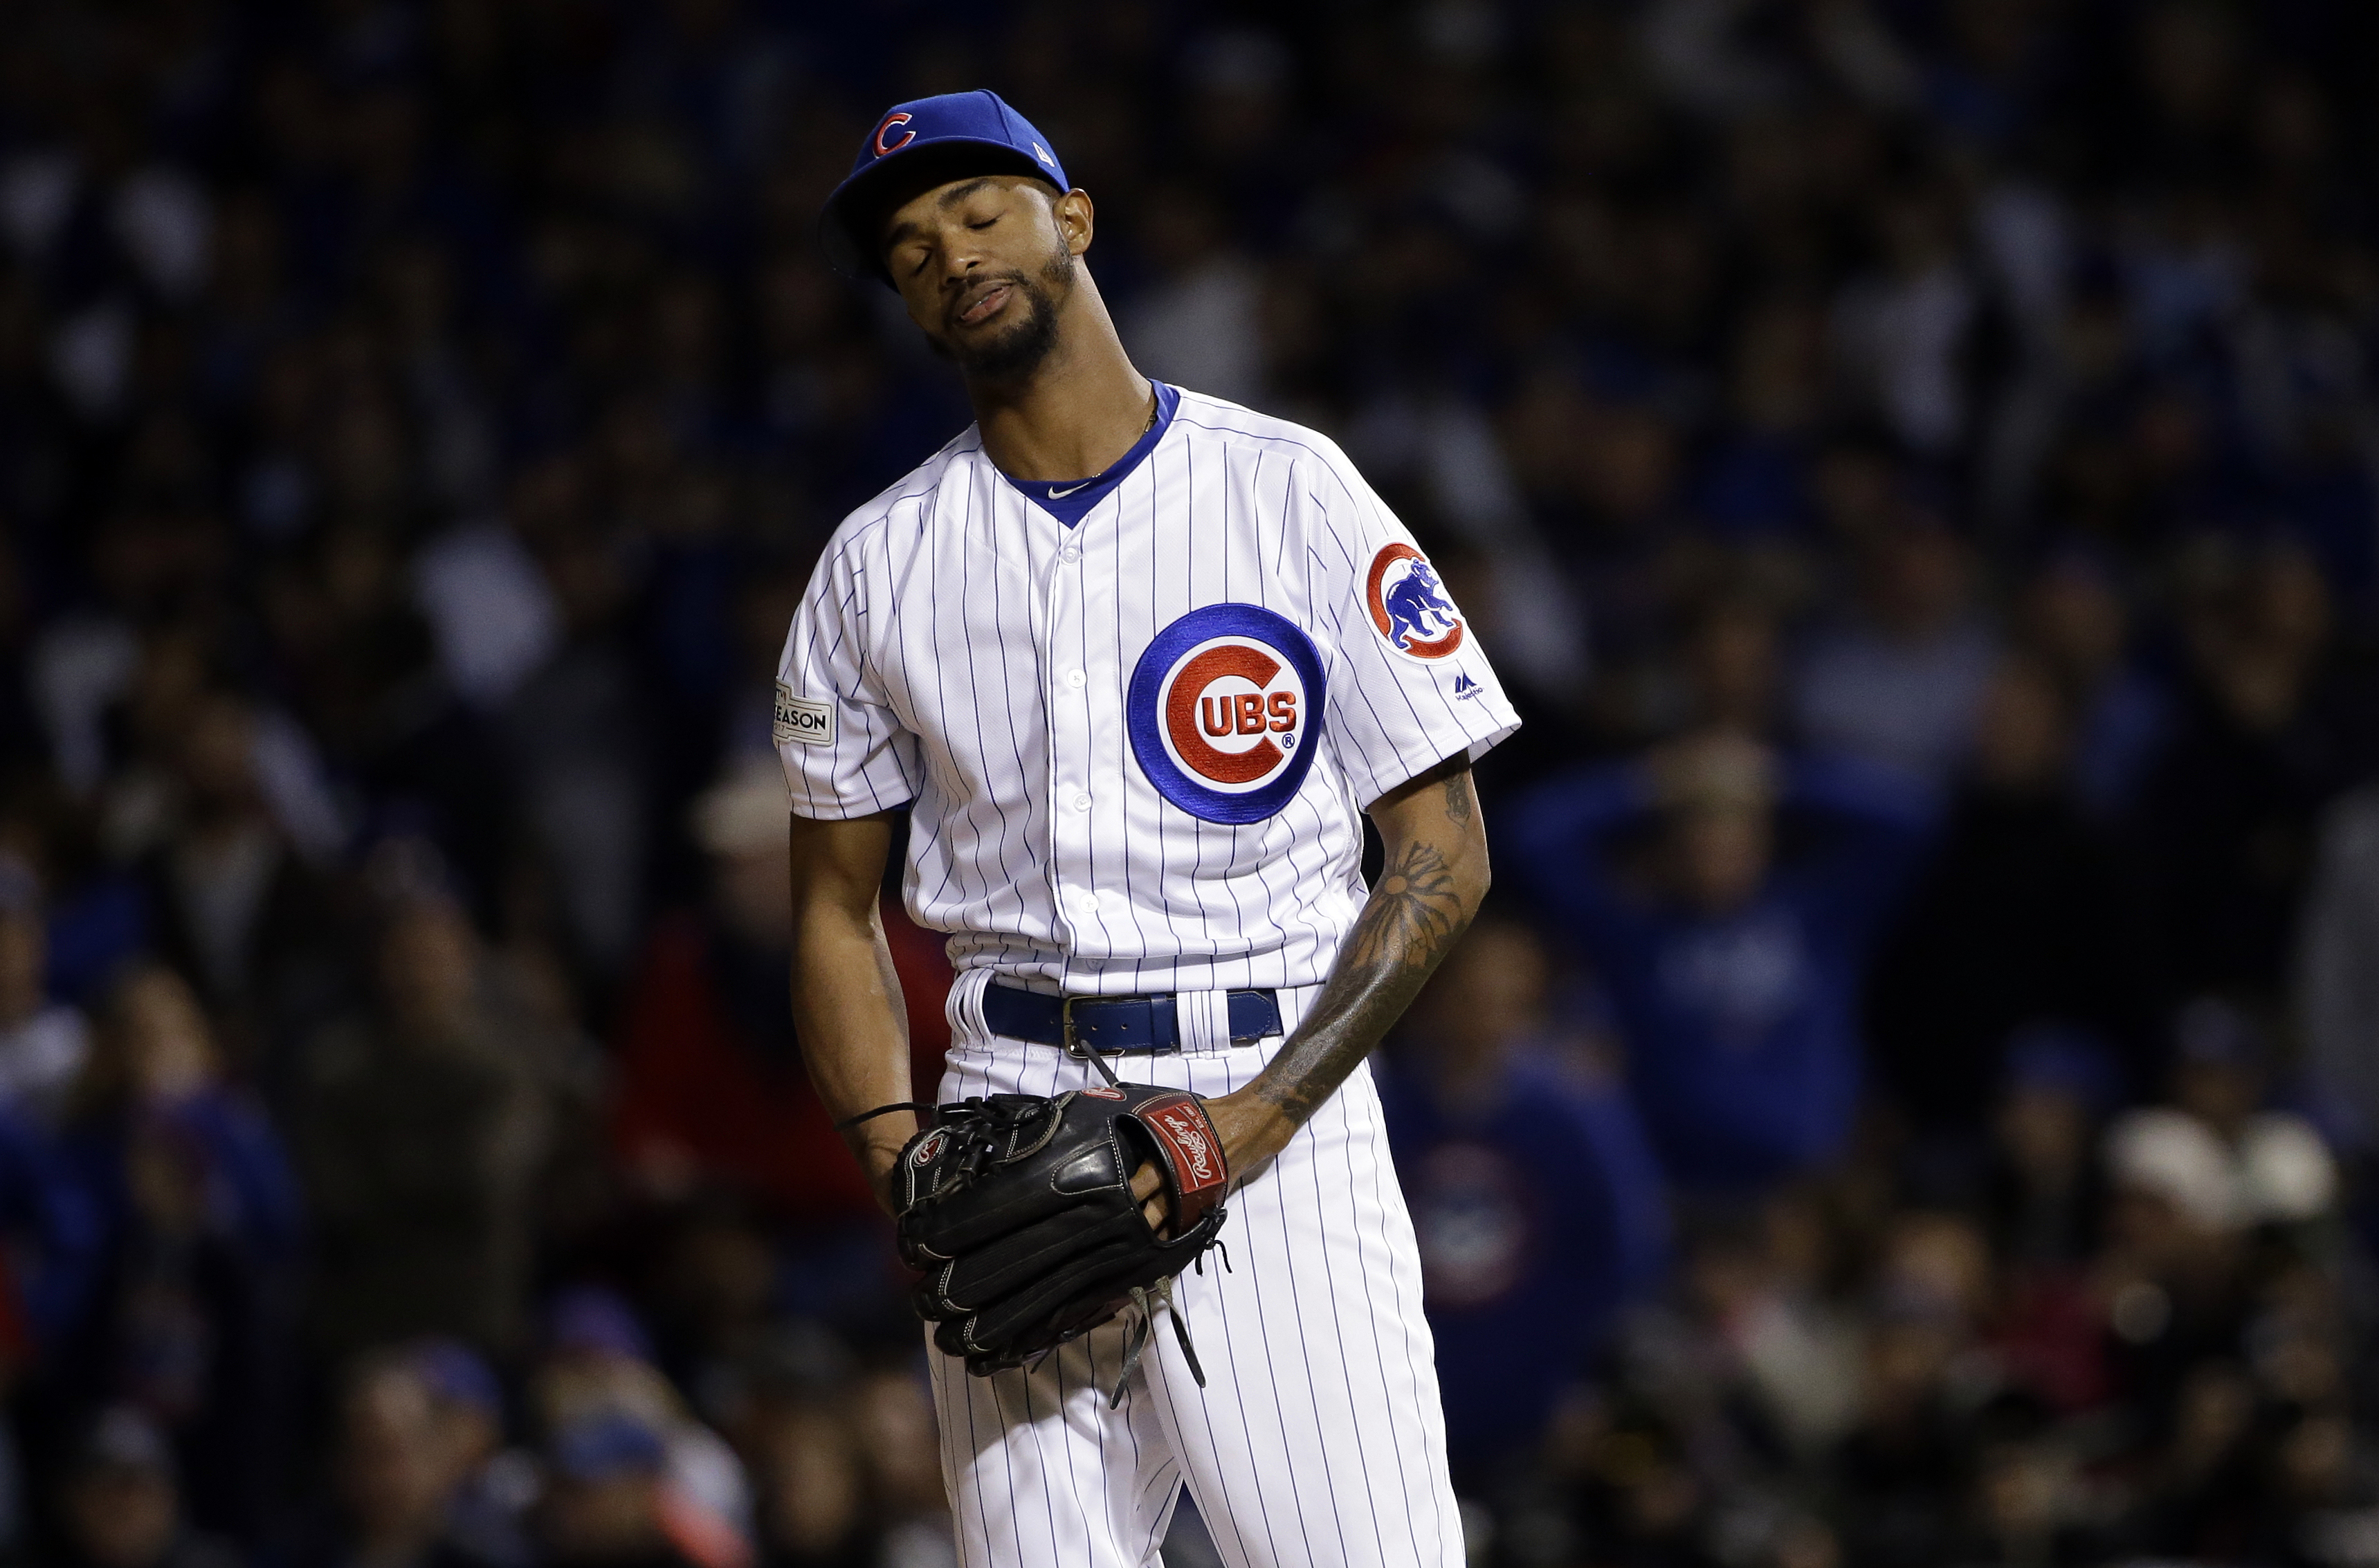 This unfortunate stat shows just how bad the Cubs were in Game 3